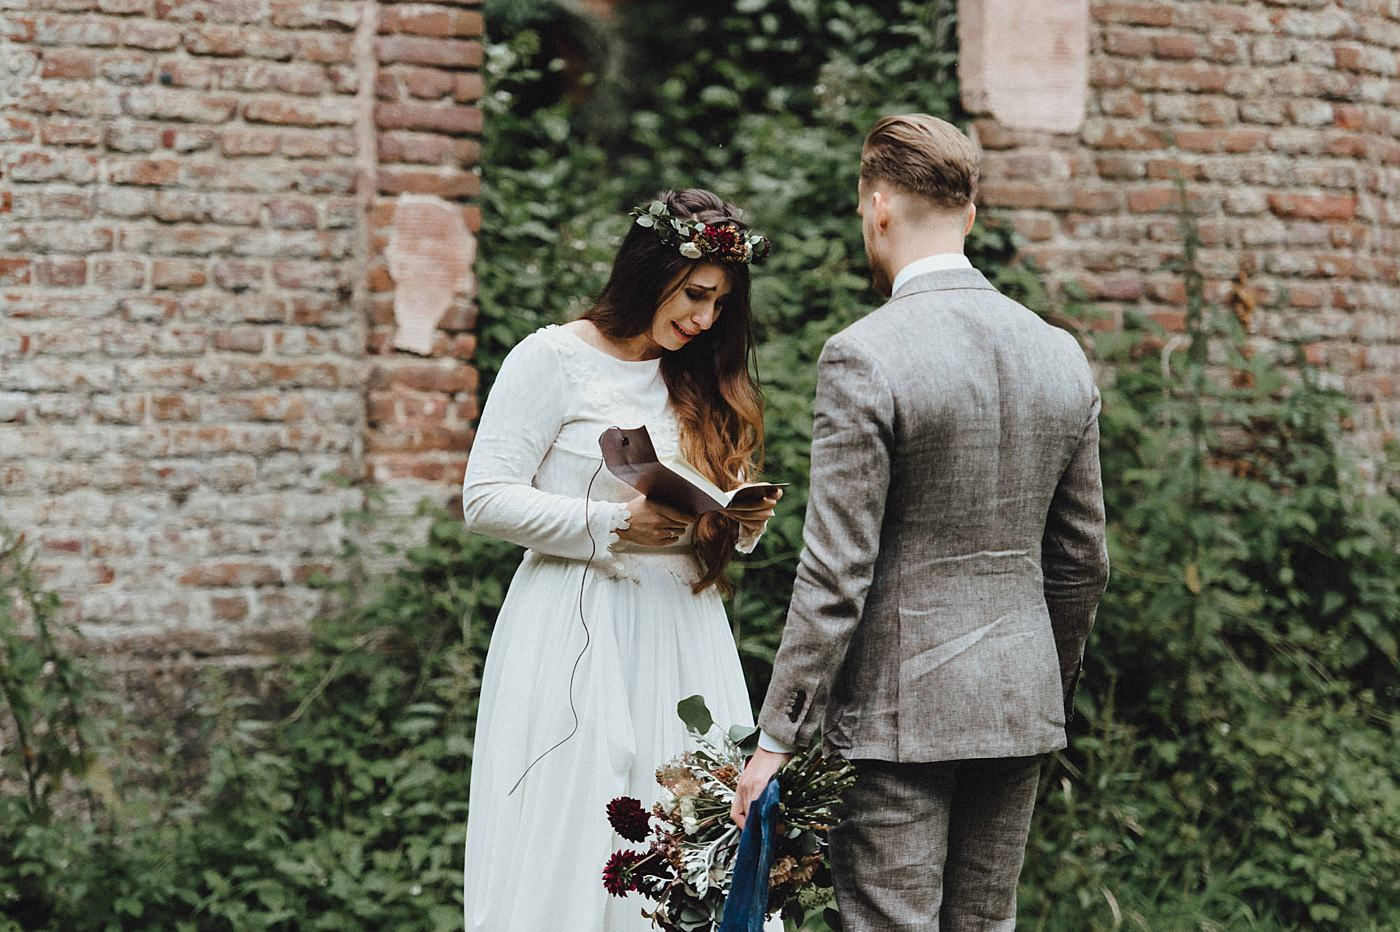 urban-elopement-wedding-114 Merve & Nils emotionales Elopement - Wedding Wesel & Schottlandurban elopement wedding 114 1